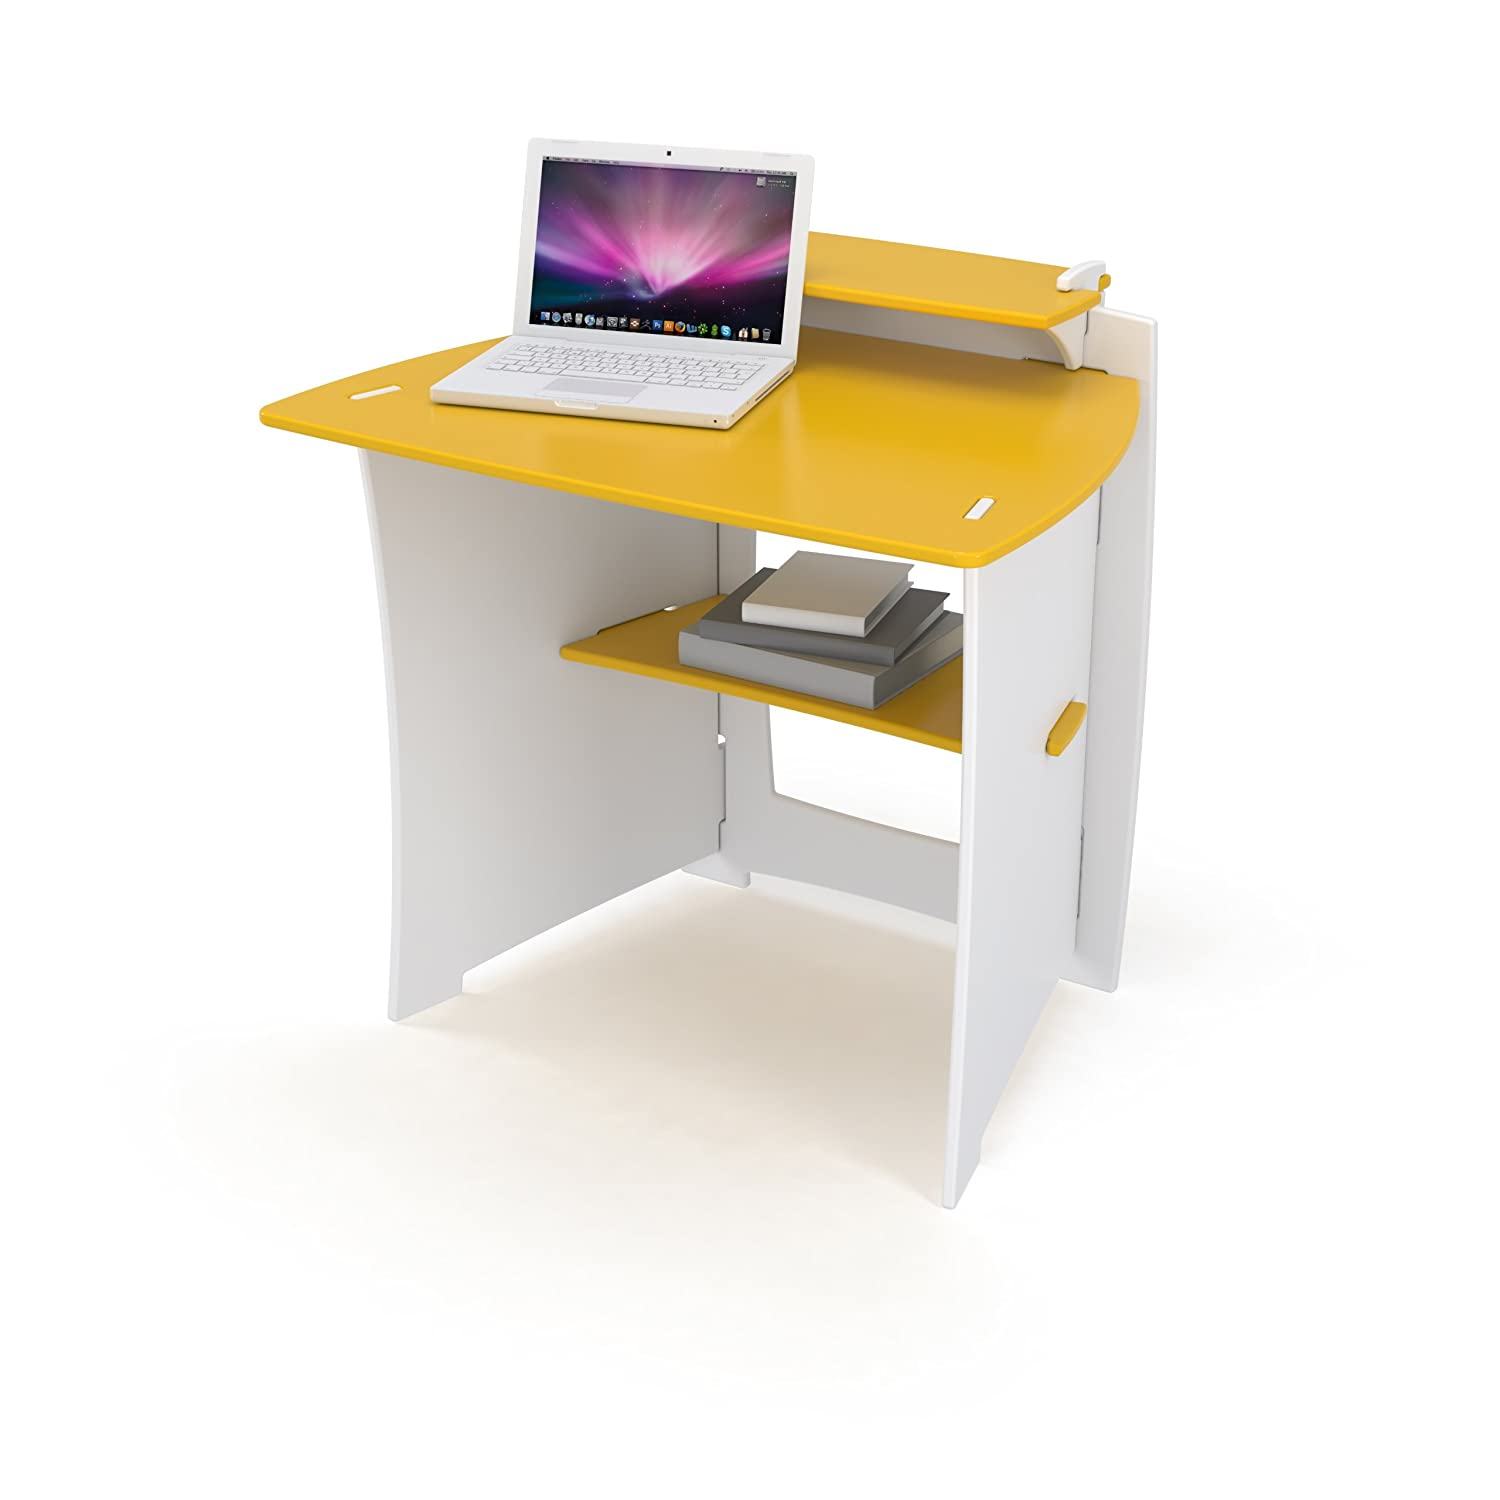 34-Inch Child Sized Computer Desk, Yellow and White